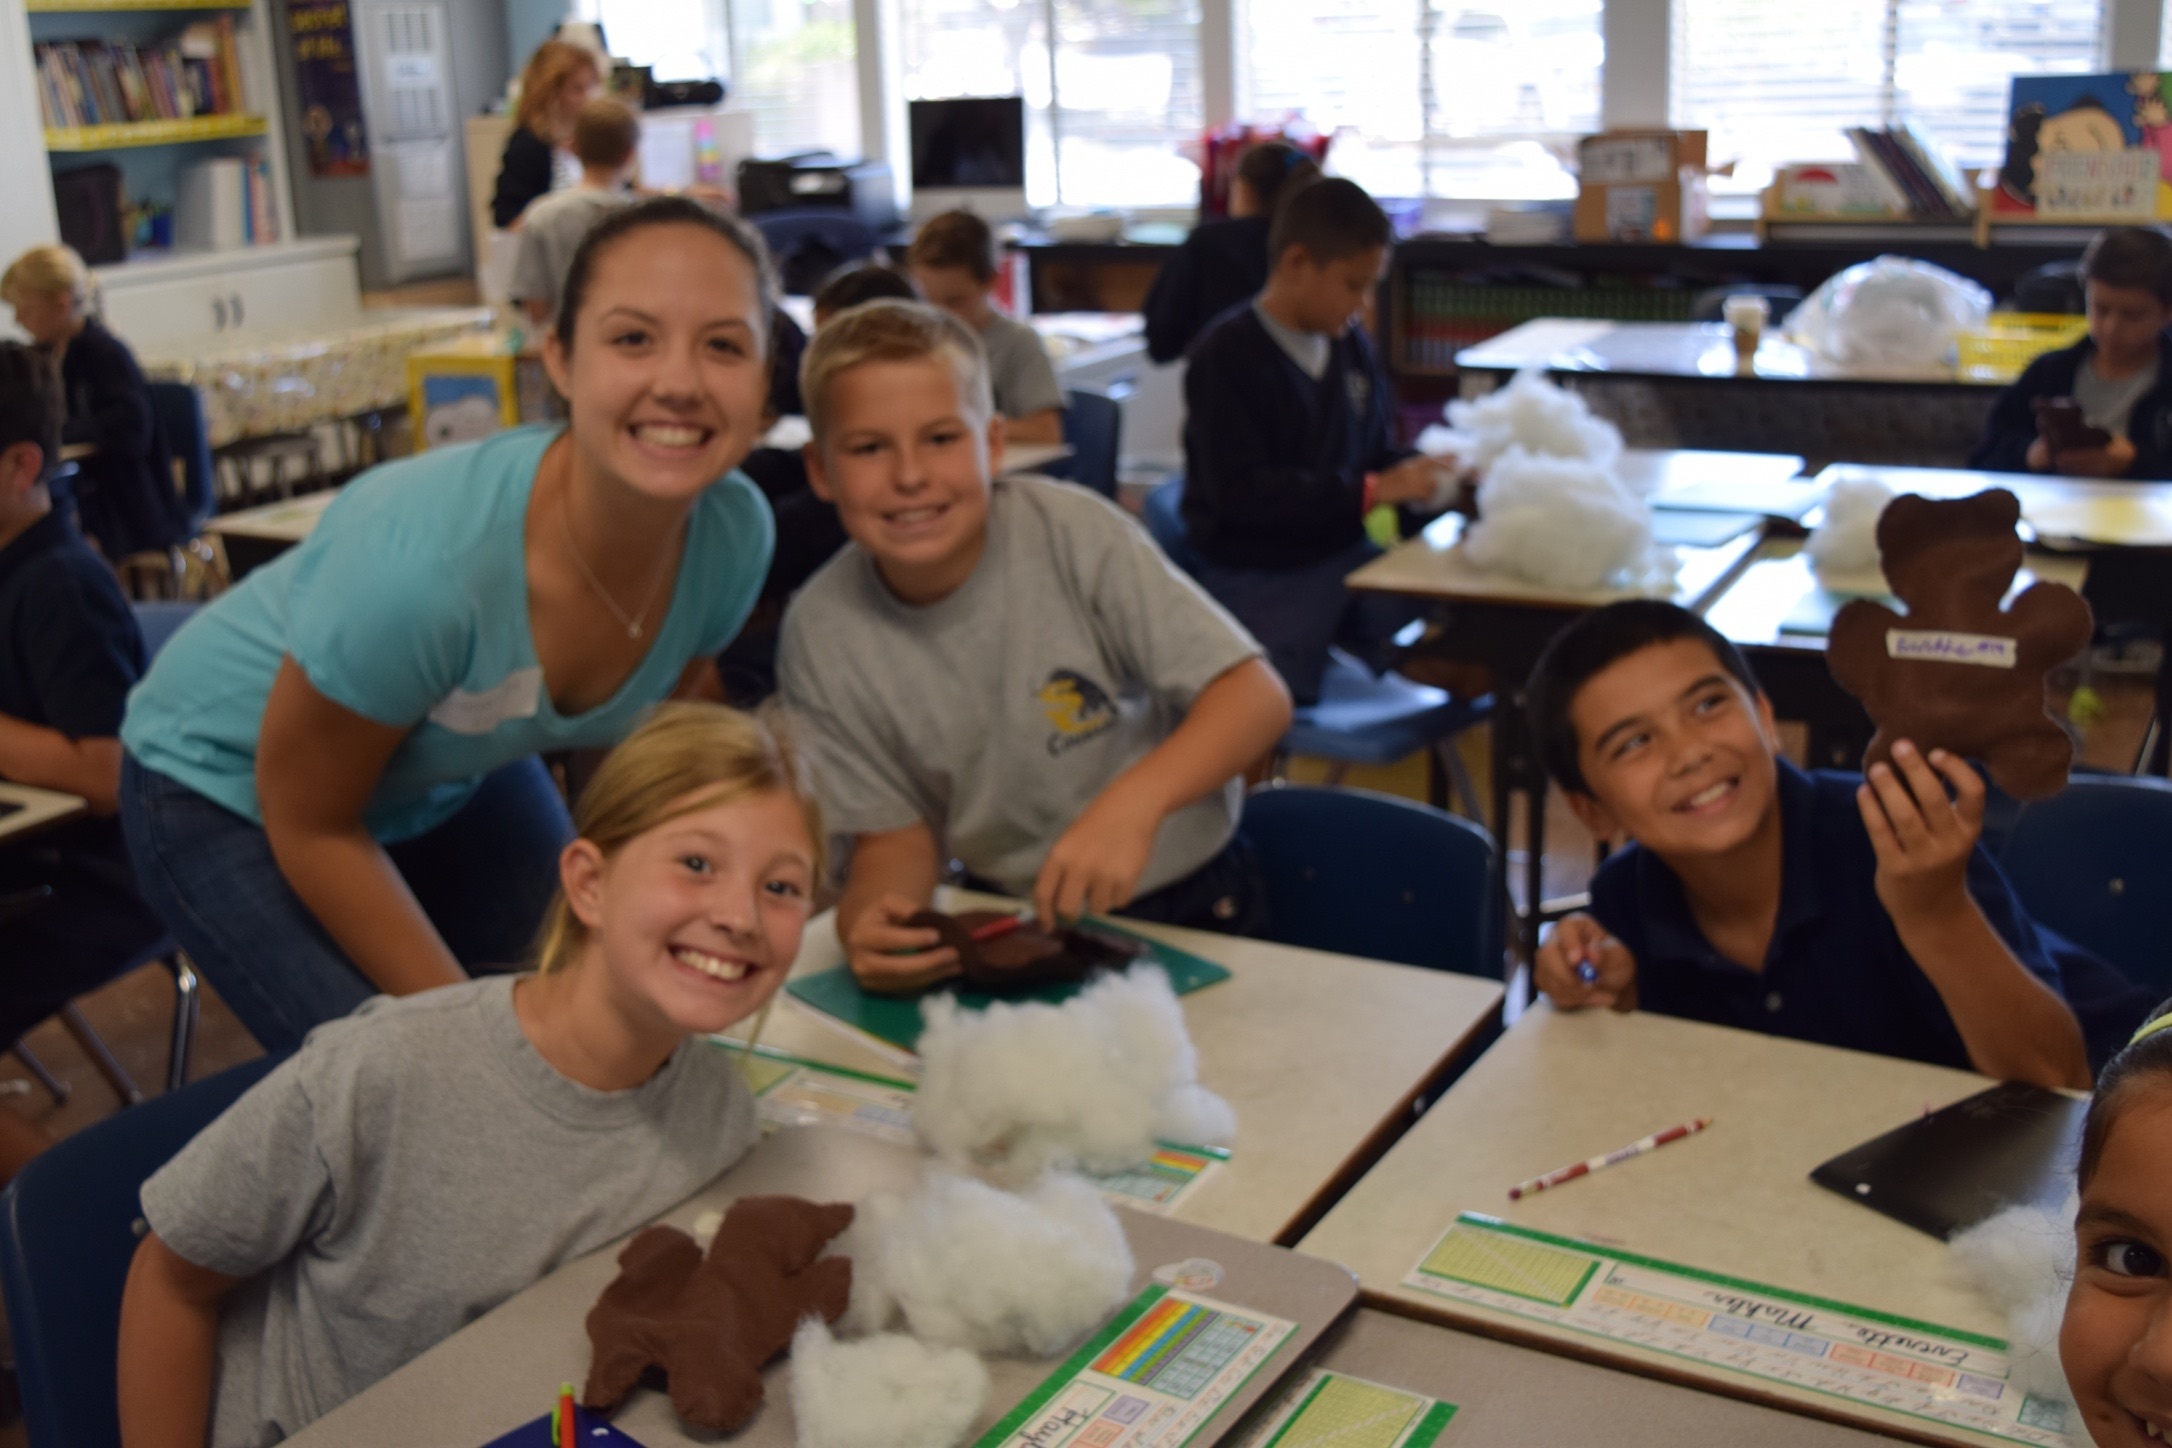 Sewing bears with table groups